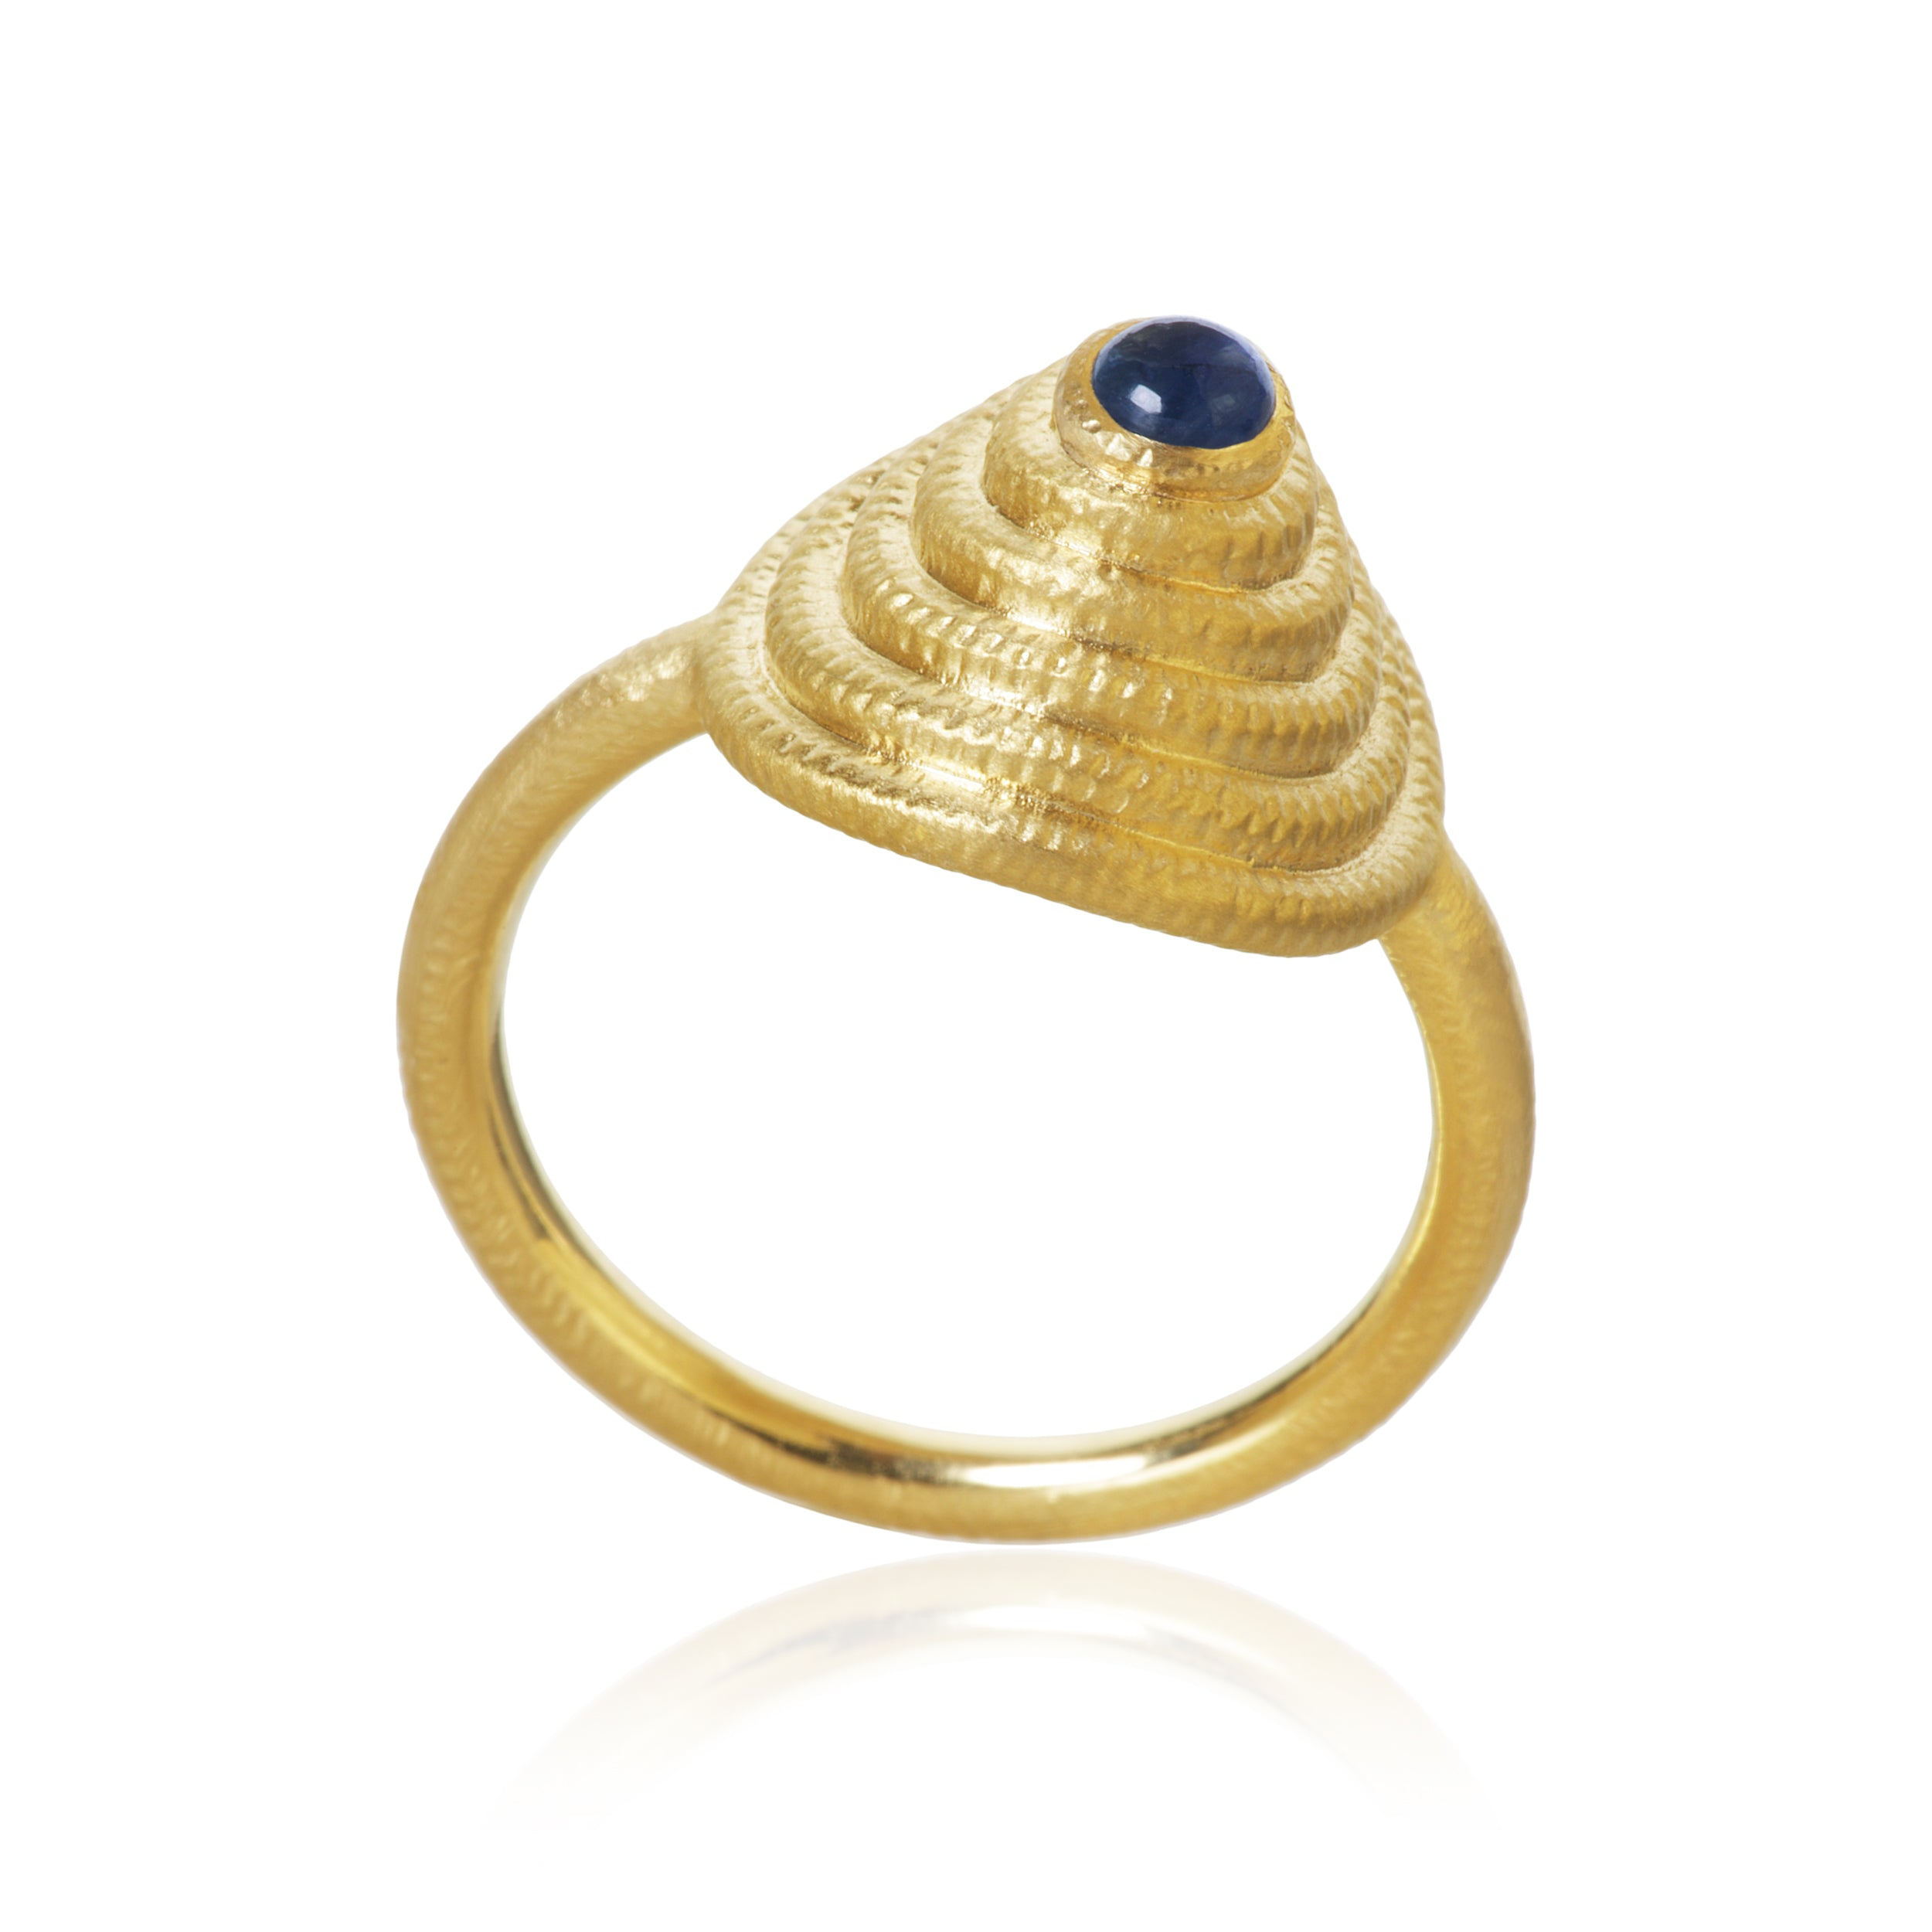 Thera Twist ring with blue sapphire.